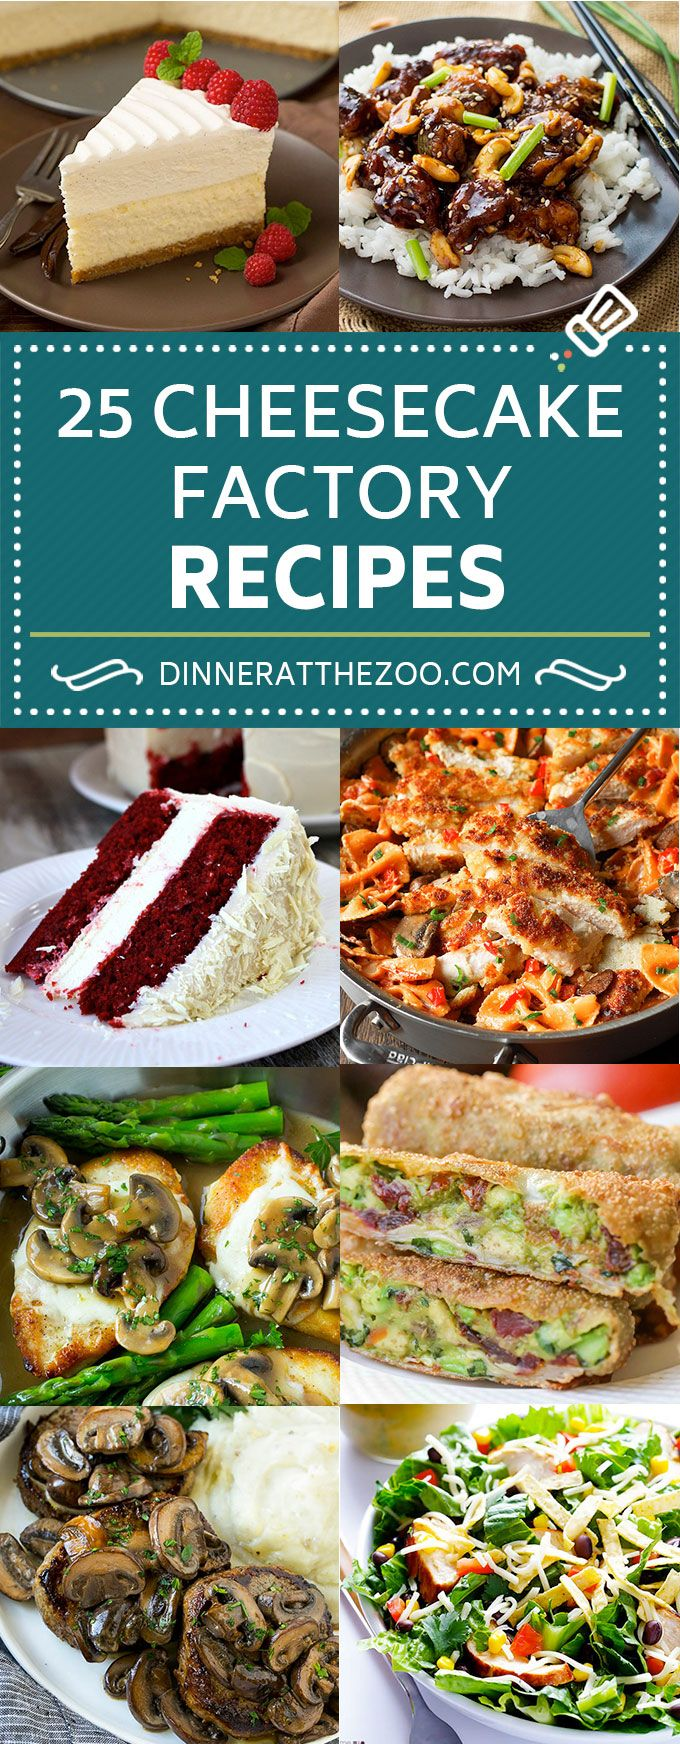 25 Cheesecake Factory Recipes   Cheesecake Factory…